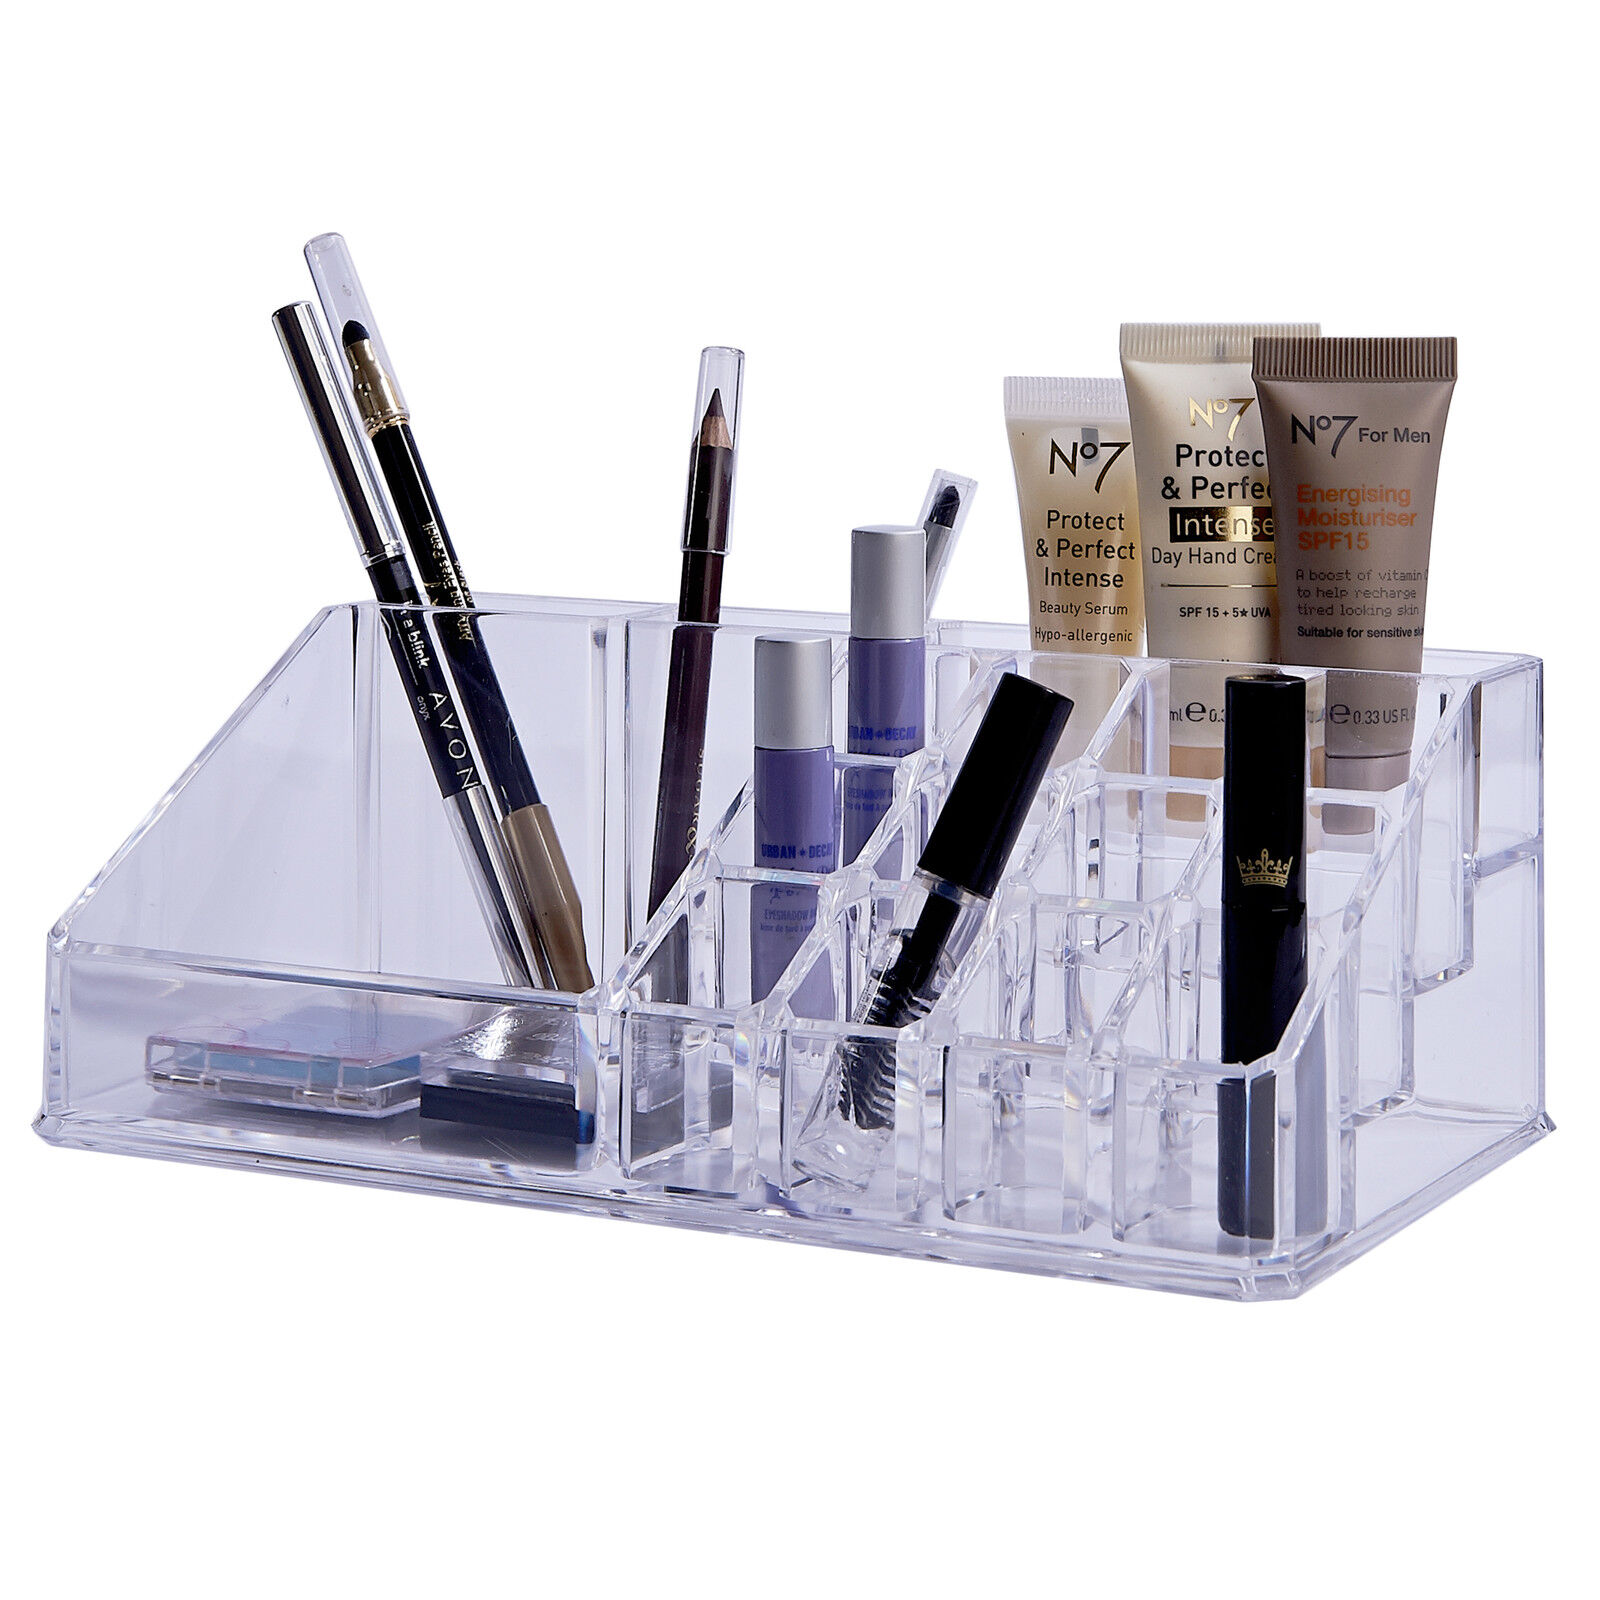 Details about COSMETIC MAKE UP NAIL POLISH ORGANISER DISPLAY STAND RACK  CLEAR ACRYLIC MAKEUP